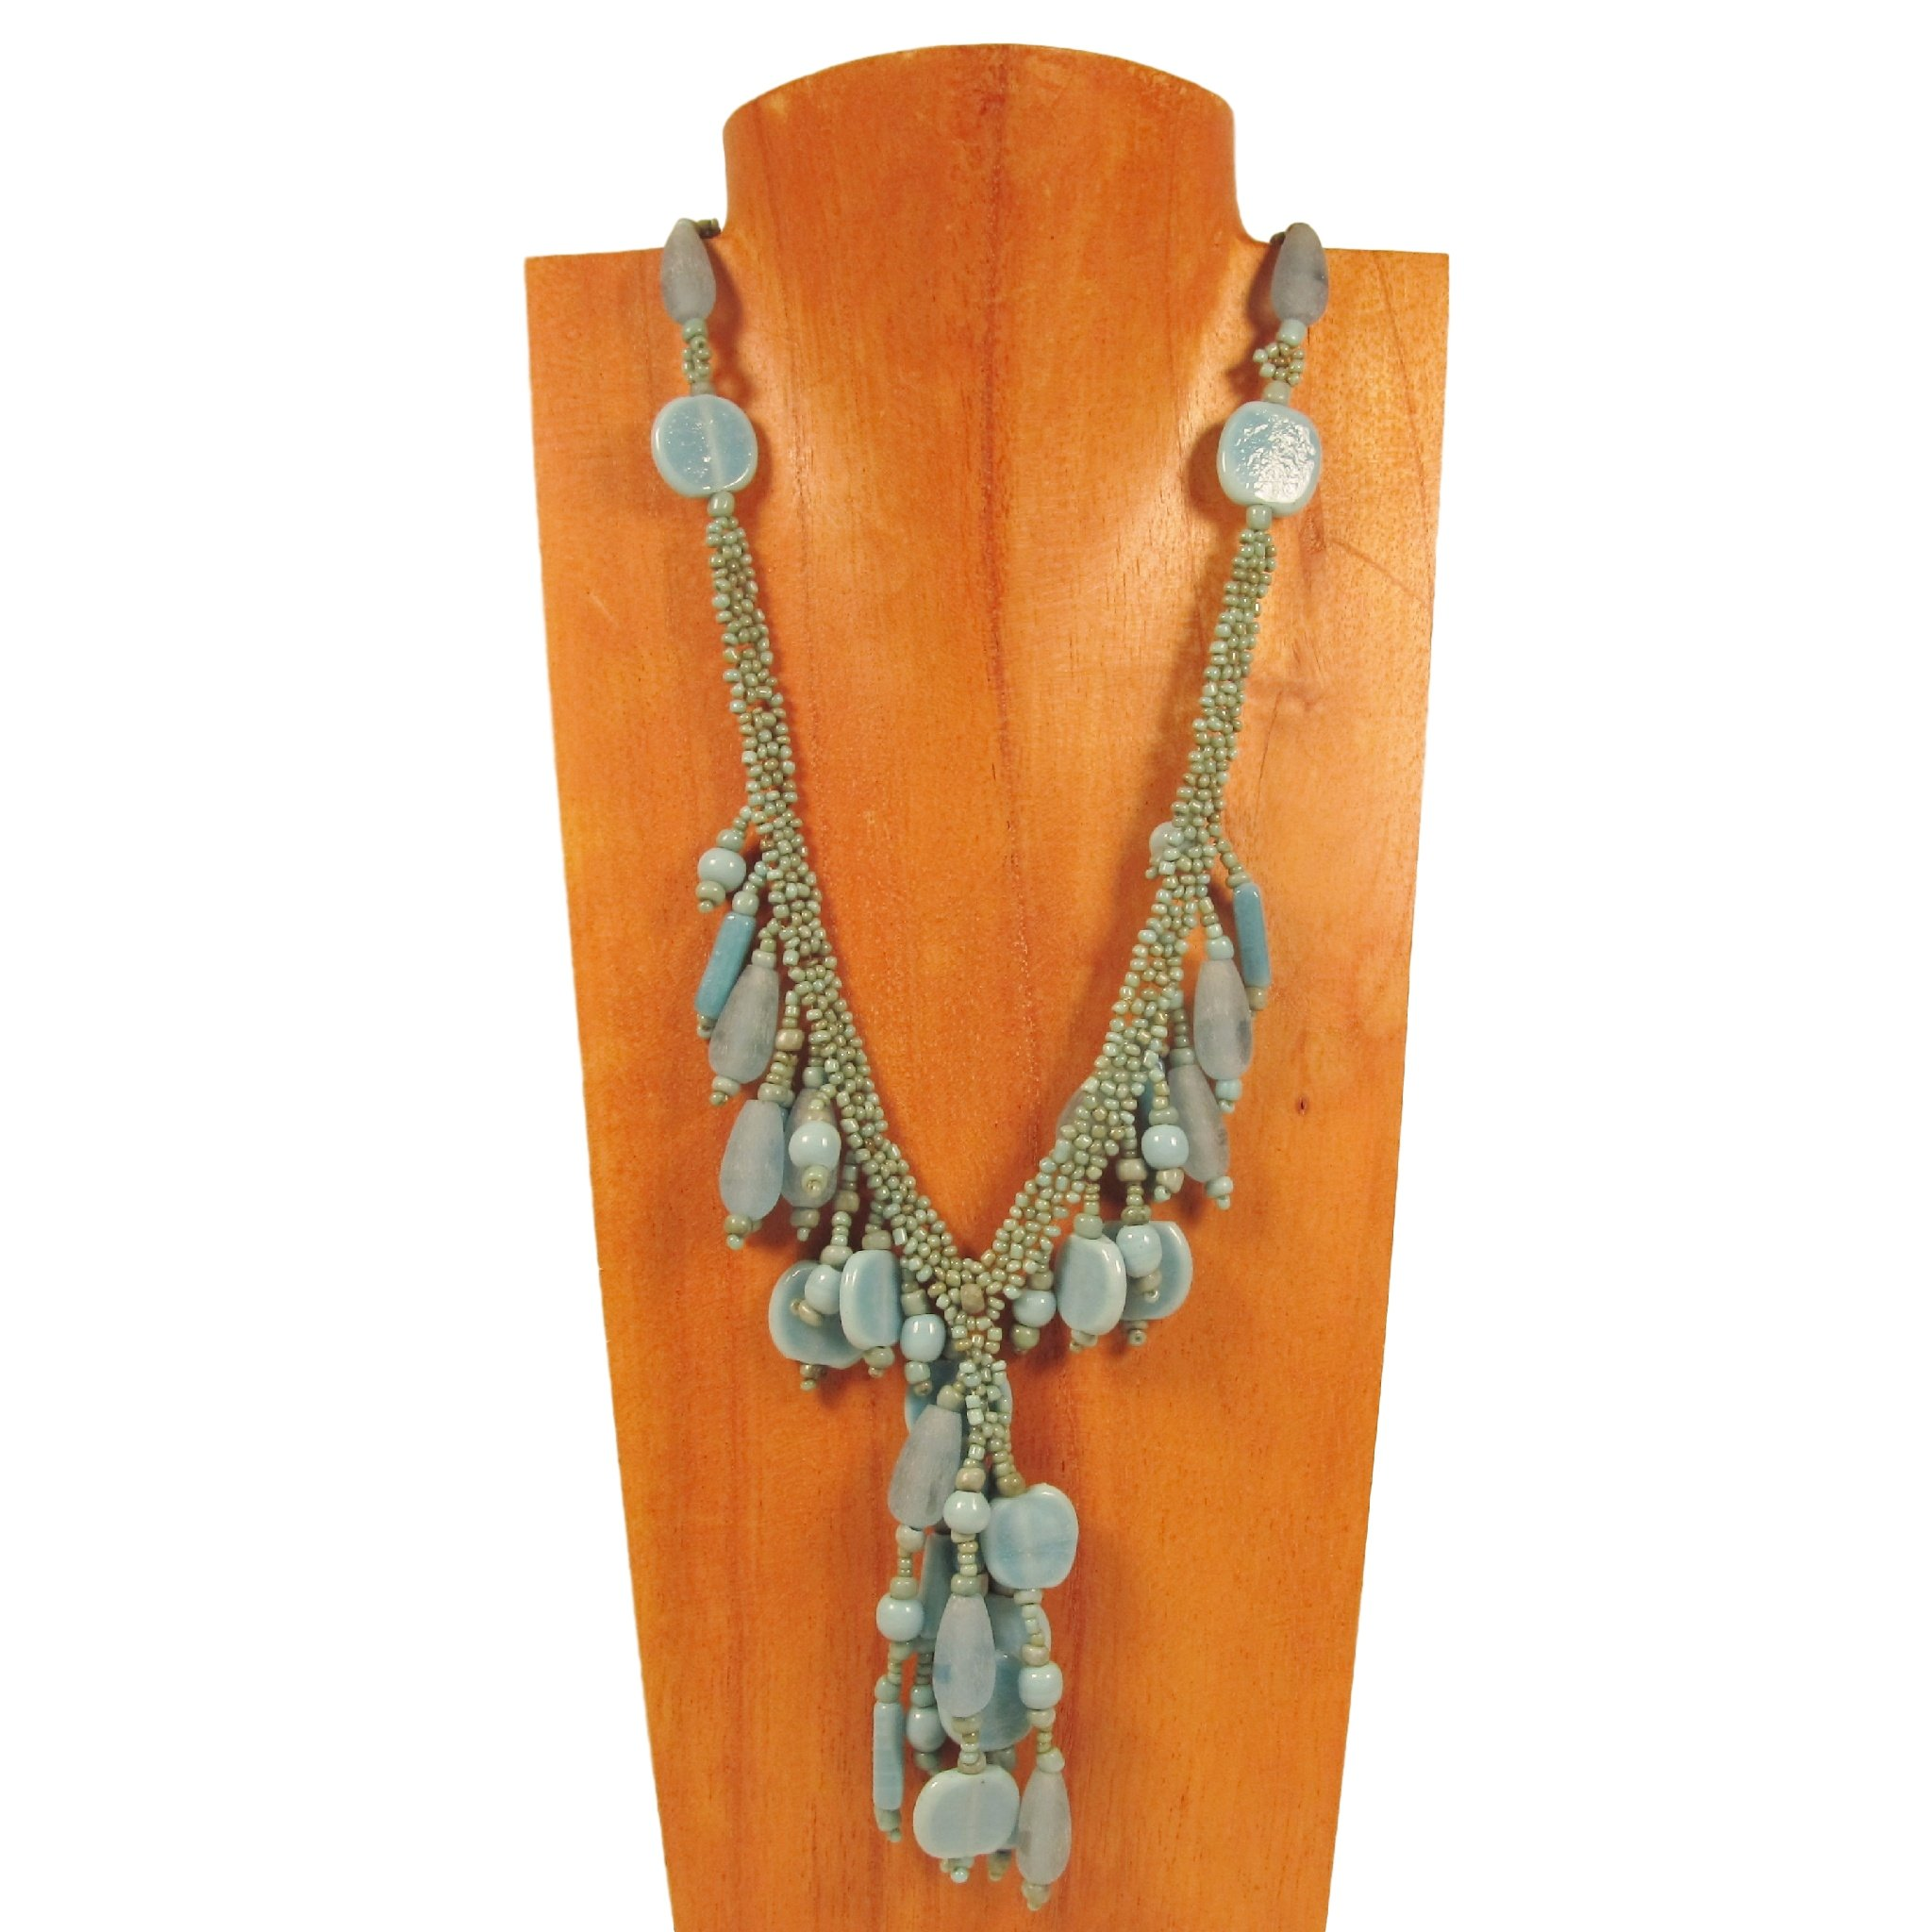 16'' Turquoise Color Raquel Style Dangle Choker Necklace Bali Bay Trading Co